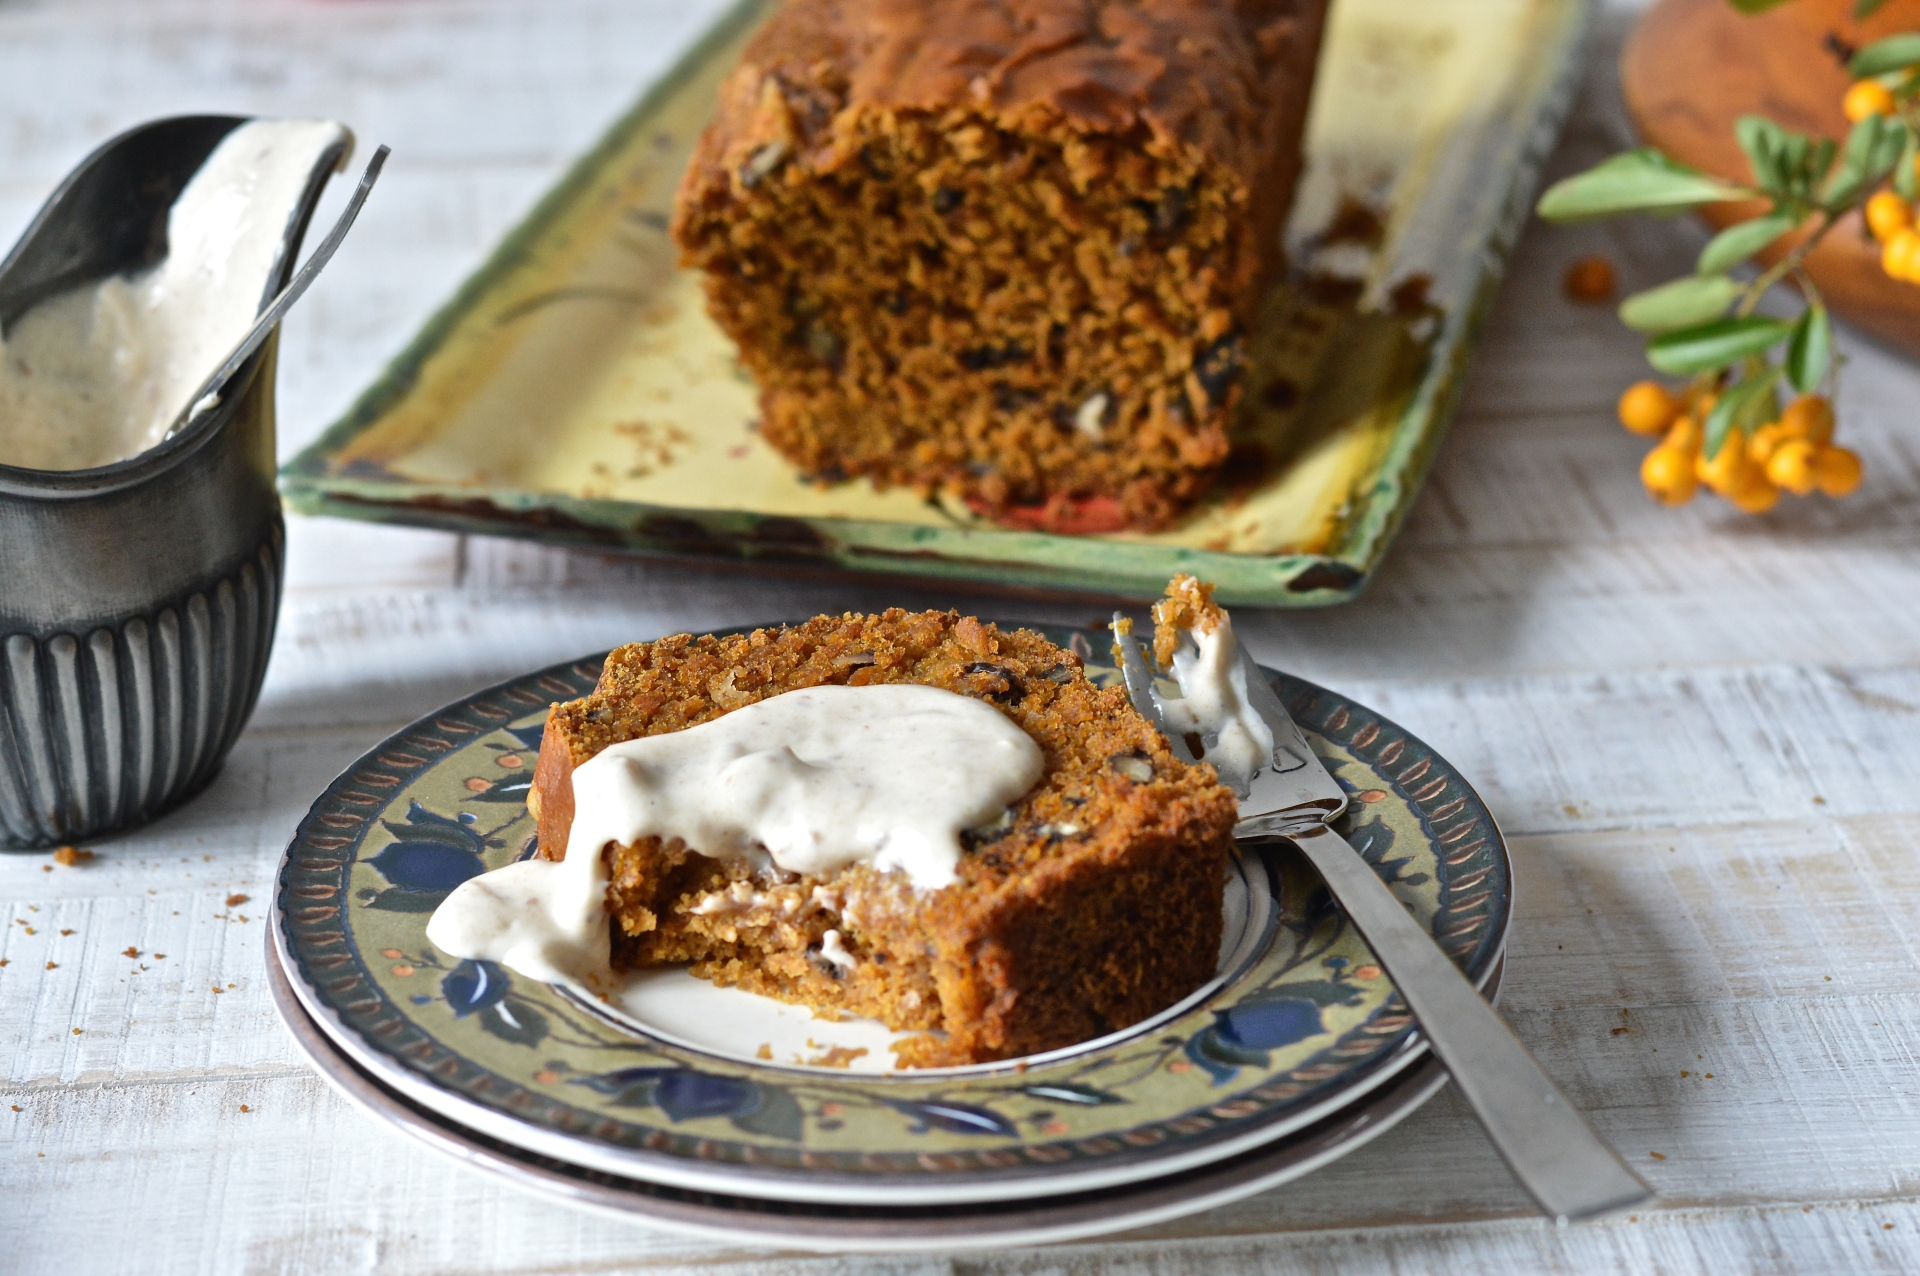 Pumpkin walnut loaf (vegan)